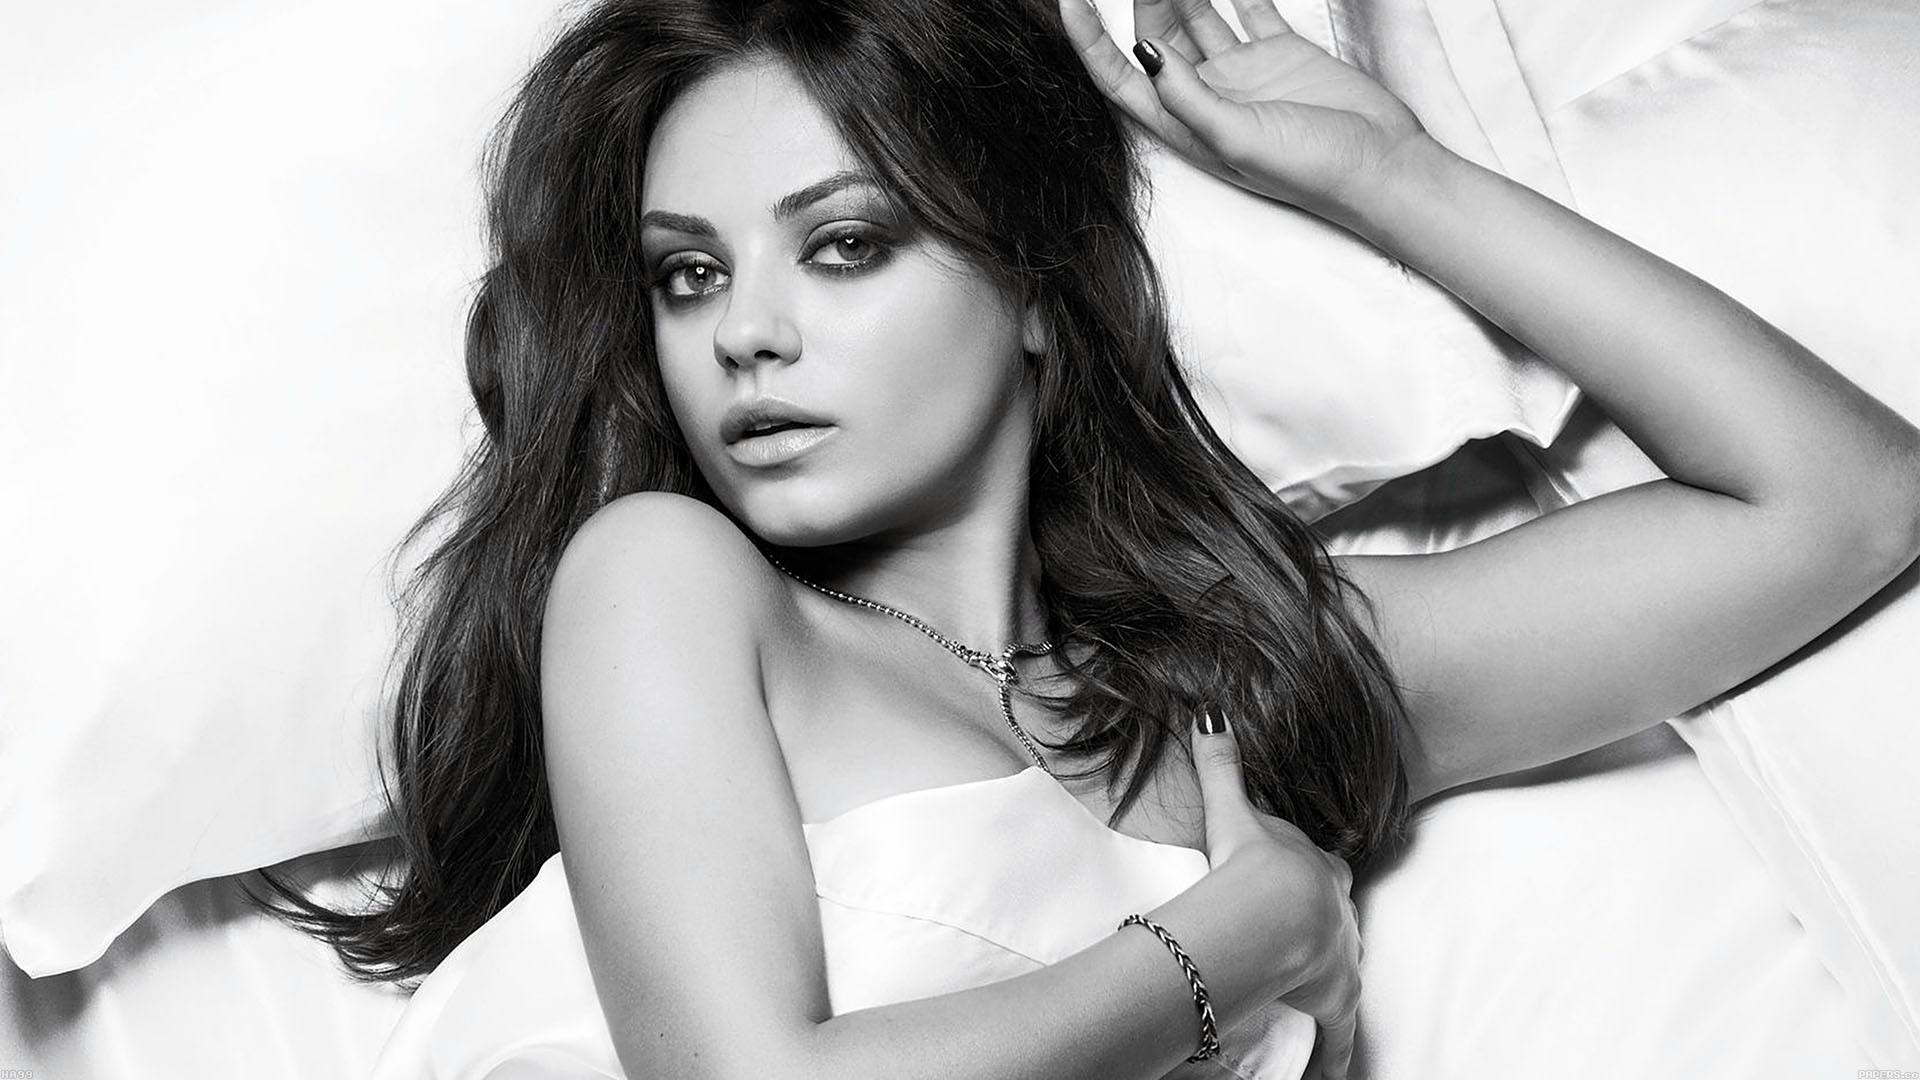 Fall Wallpaper Ipad Pro Ha99 Wallpaper Mila Kunis Esquire Sexy Woman Face Papers Co